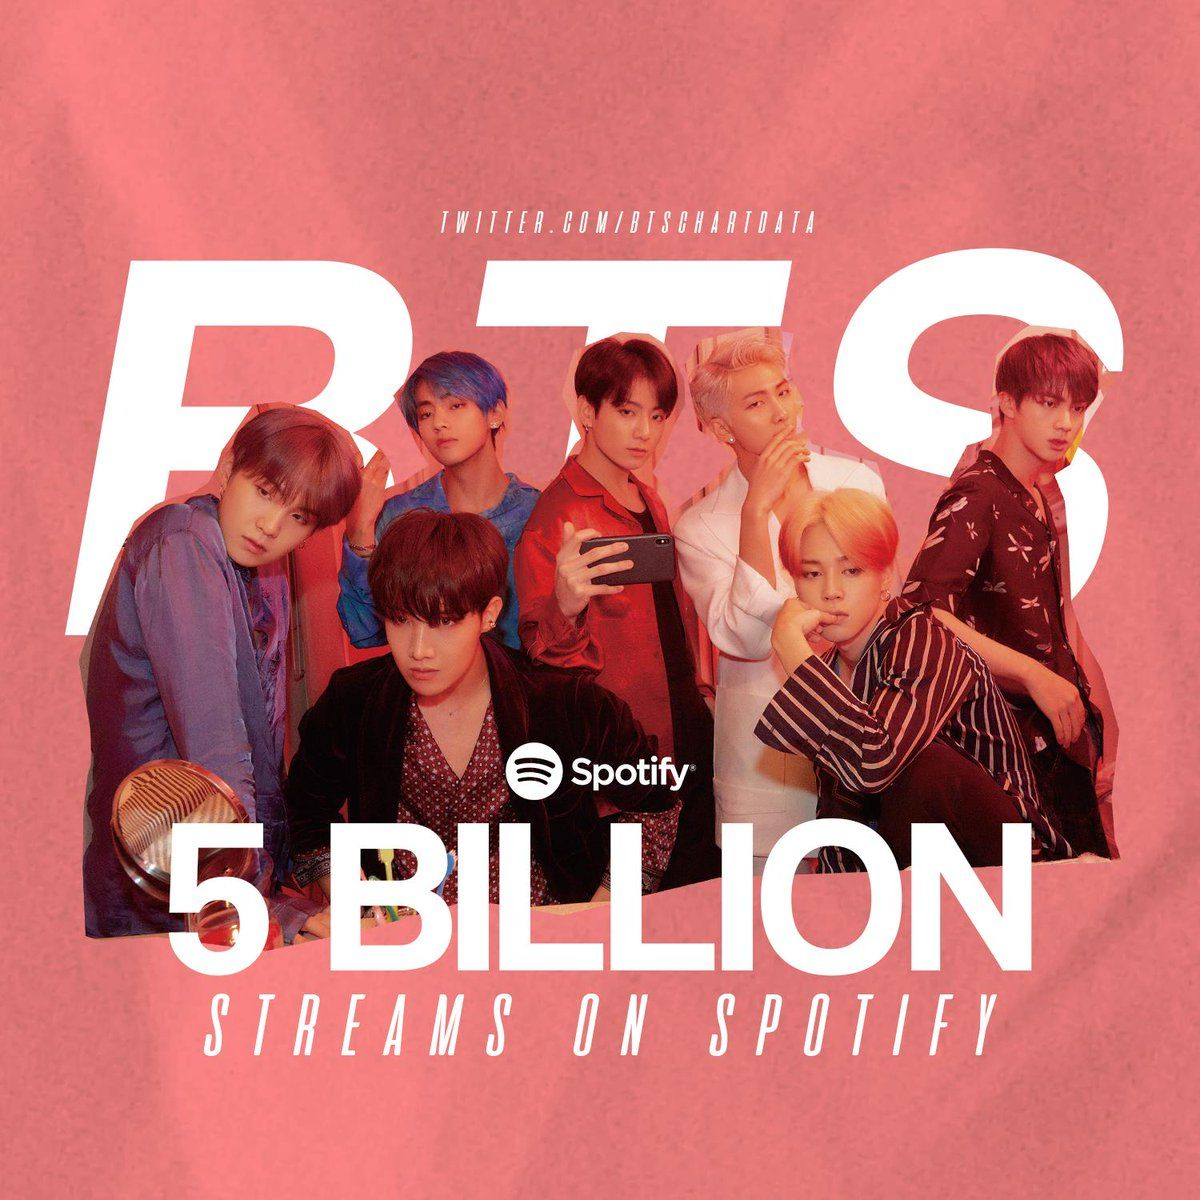 BTS's discography has just surpassed 5B streams on Spotify